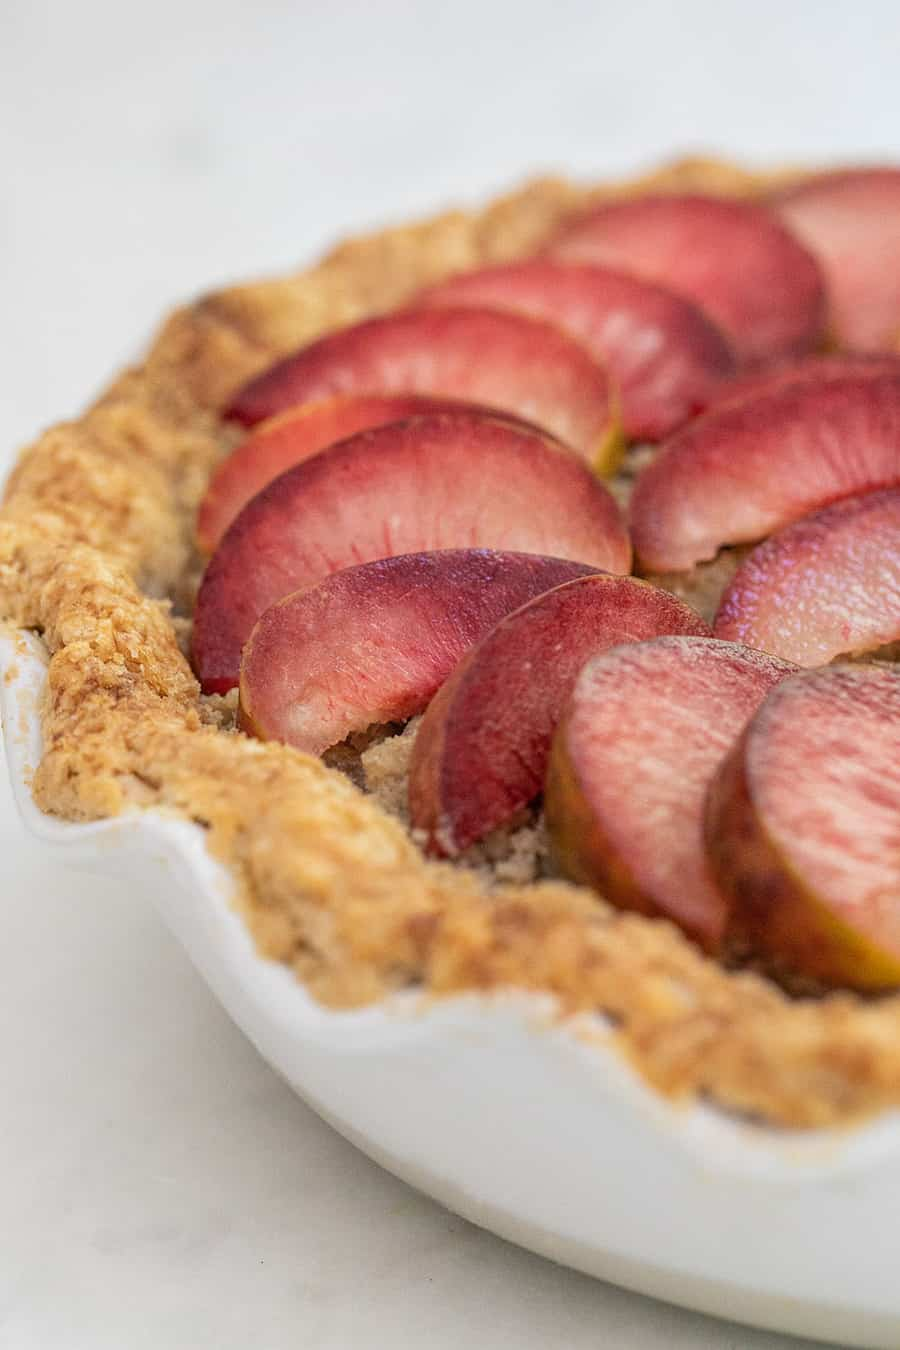 Aprium and plumcot pie with buttery pie crust and sliced plumcots.